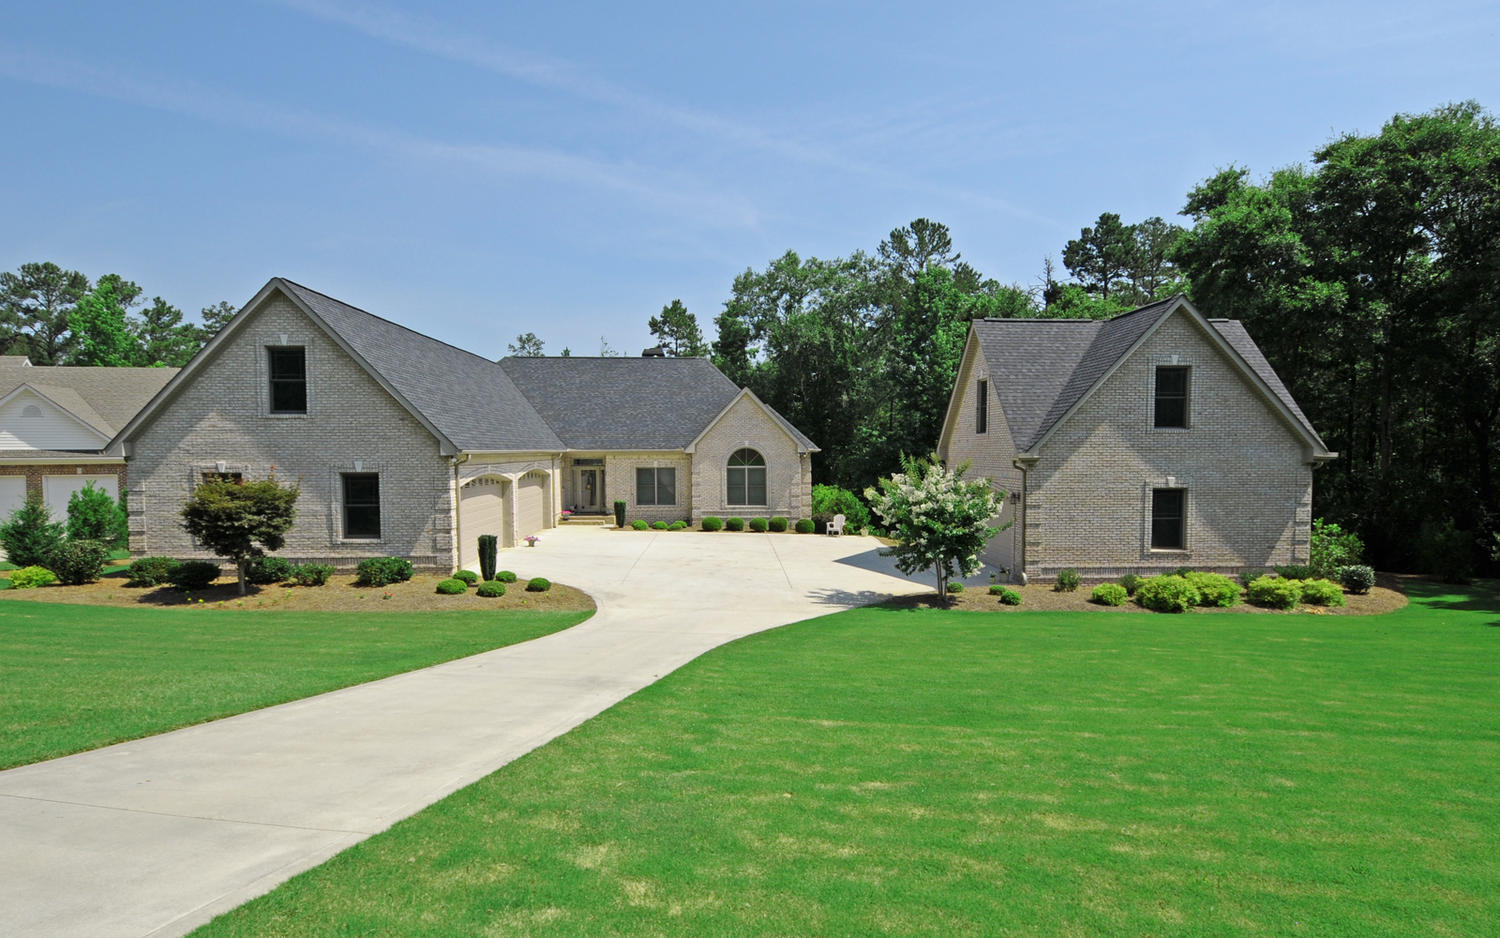 SPICER LAKE HOME-large-002-2-Exterior-1500x938-72dpi